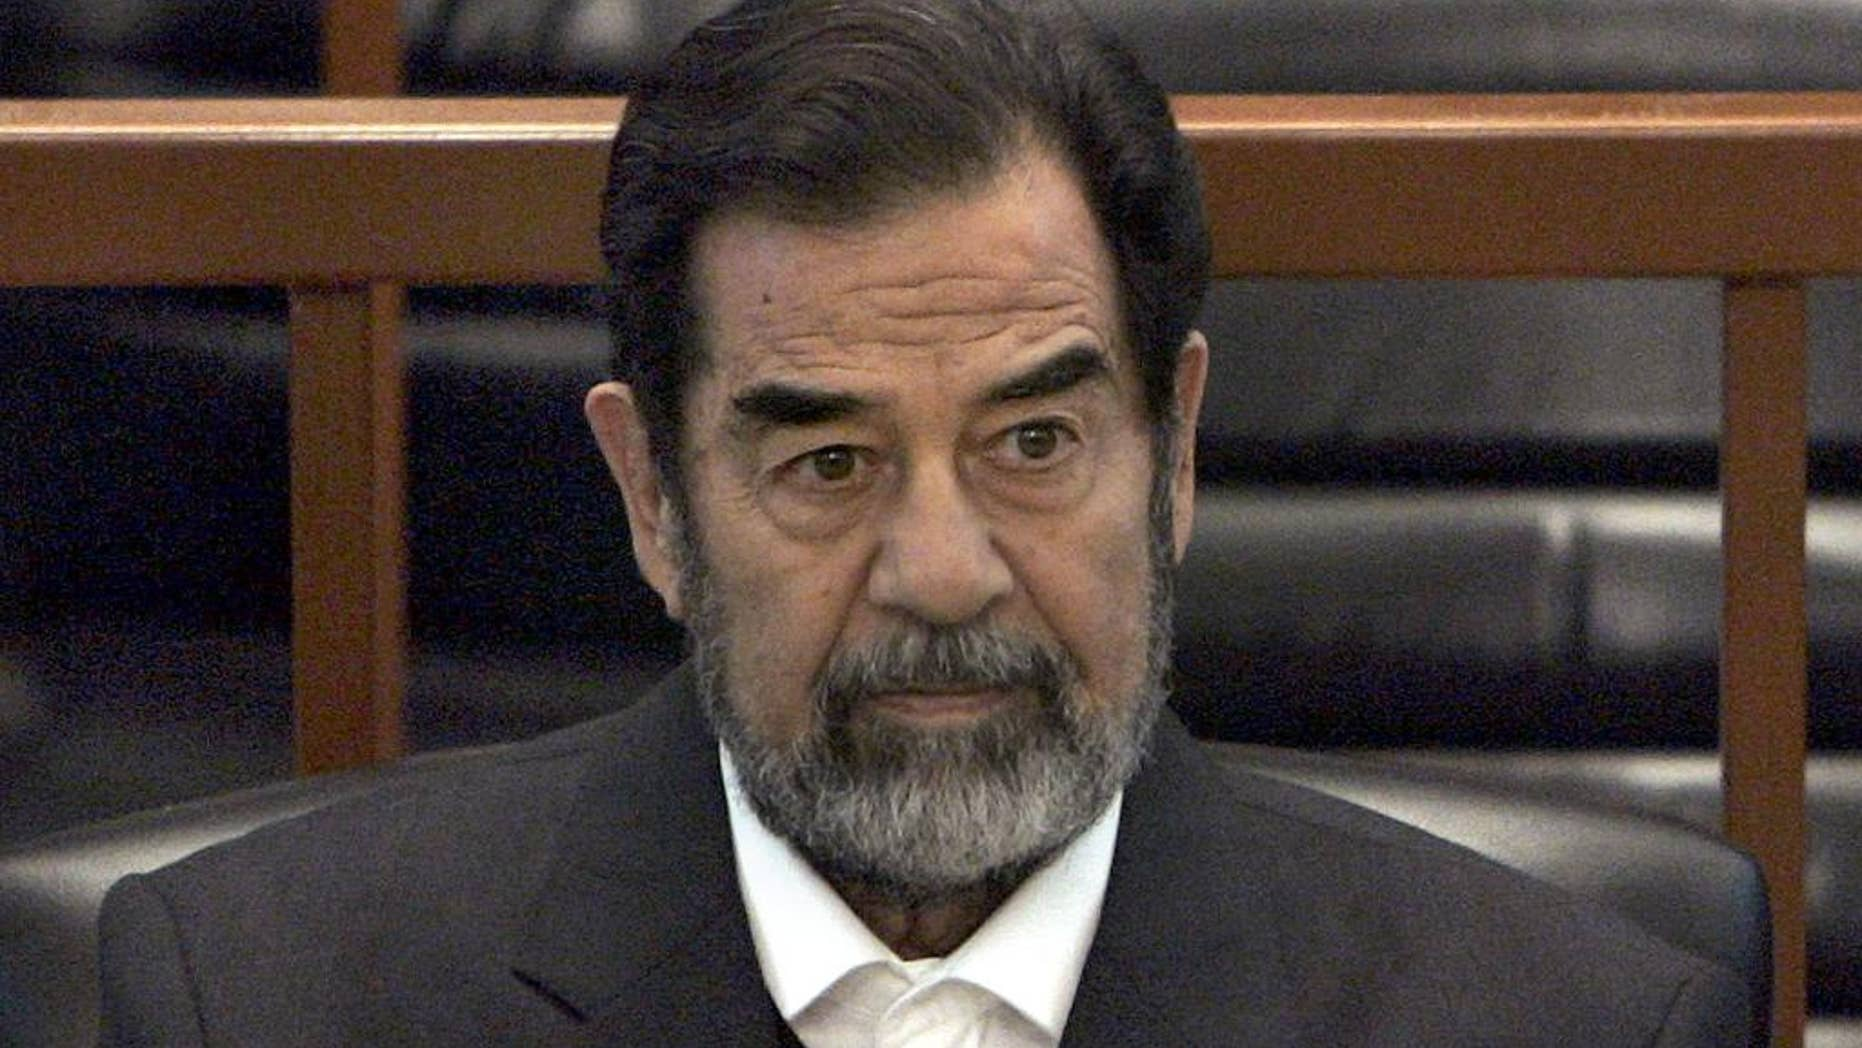 """FILE - In this Dec. 6, 2006 file photo, former Iraq leader Saddam Hussein sits in court in Baghdad, Iraq, during the """"Anfal"""" trial against him. Republican Donald Trump is again praising the former Iraqi President Hussein's ruthlessness, saying he killed terrorists """"so good."""" Trump was speaking at a rally Tuesday, July 5, 2016, in North Carolina when he turned to the former Iraqi leader. (AP Photo/Chris Hondros, Pool, File)"""